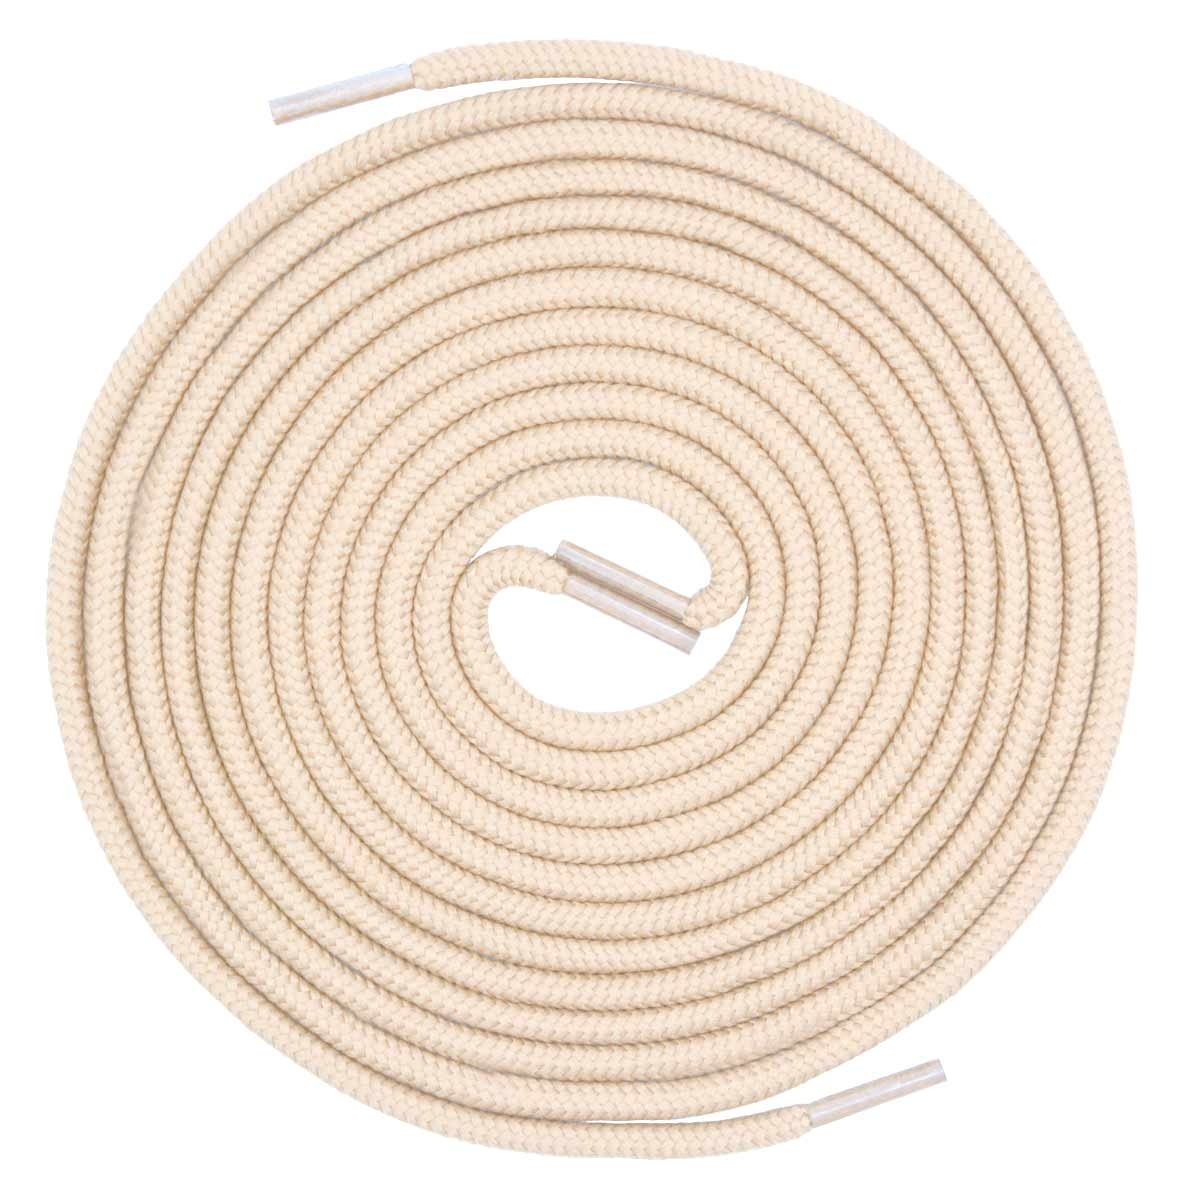 d030b3bfdd Buy VSUDO 2Pairs Beige Round Shoelaces, 5/32 Thick Shoe Laces for ...